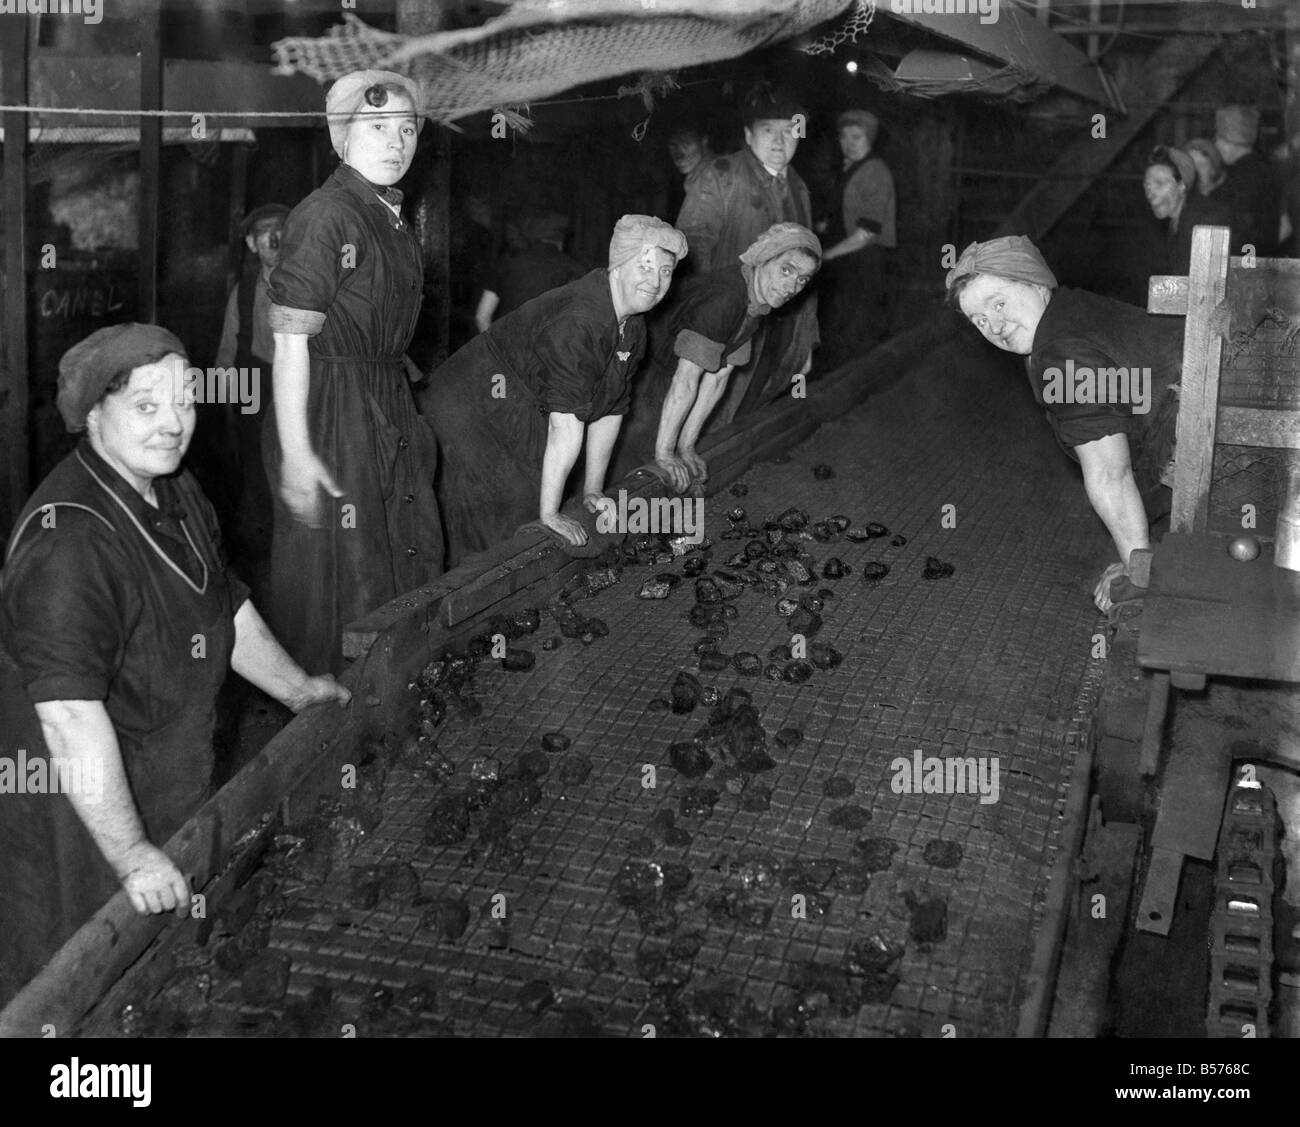 The Last of their Line.1. The pit-brow lasses are to leave Giants Hall Colliery, Standish. They will no longer be - Stock Image